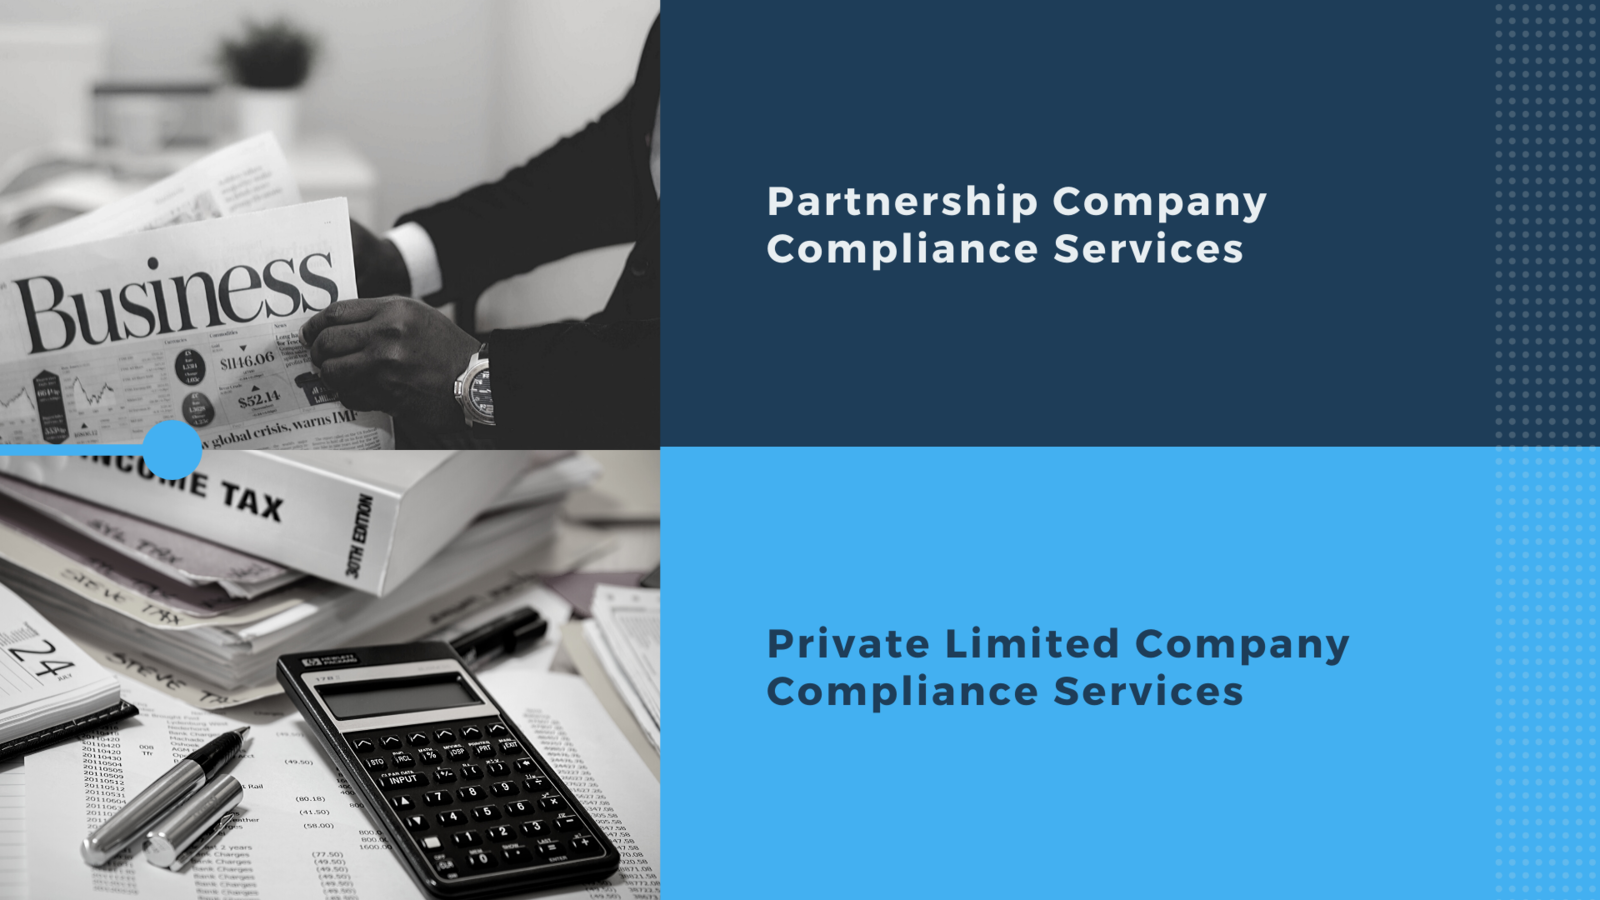 Partnership vs Private Limited Company Tax Point of View